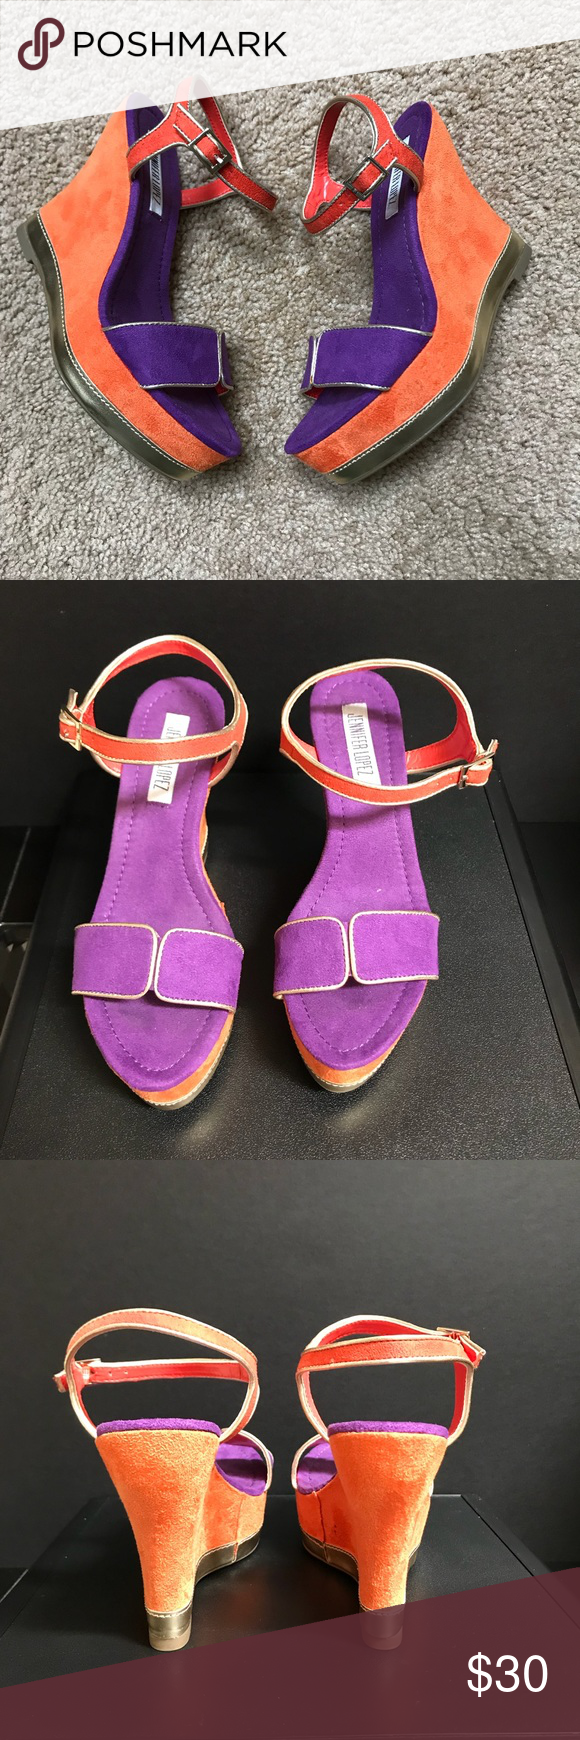 b067b2d9e09 Jennifer Lopez wedge sandals Vibrant orange and purple colors with gold  detail. Jennifer Lopez Shoes Wedges